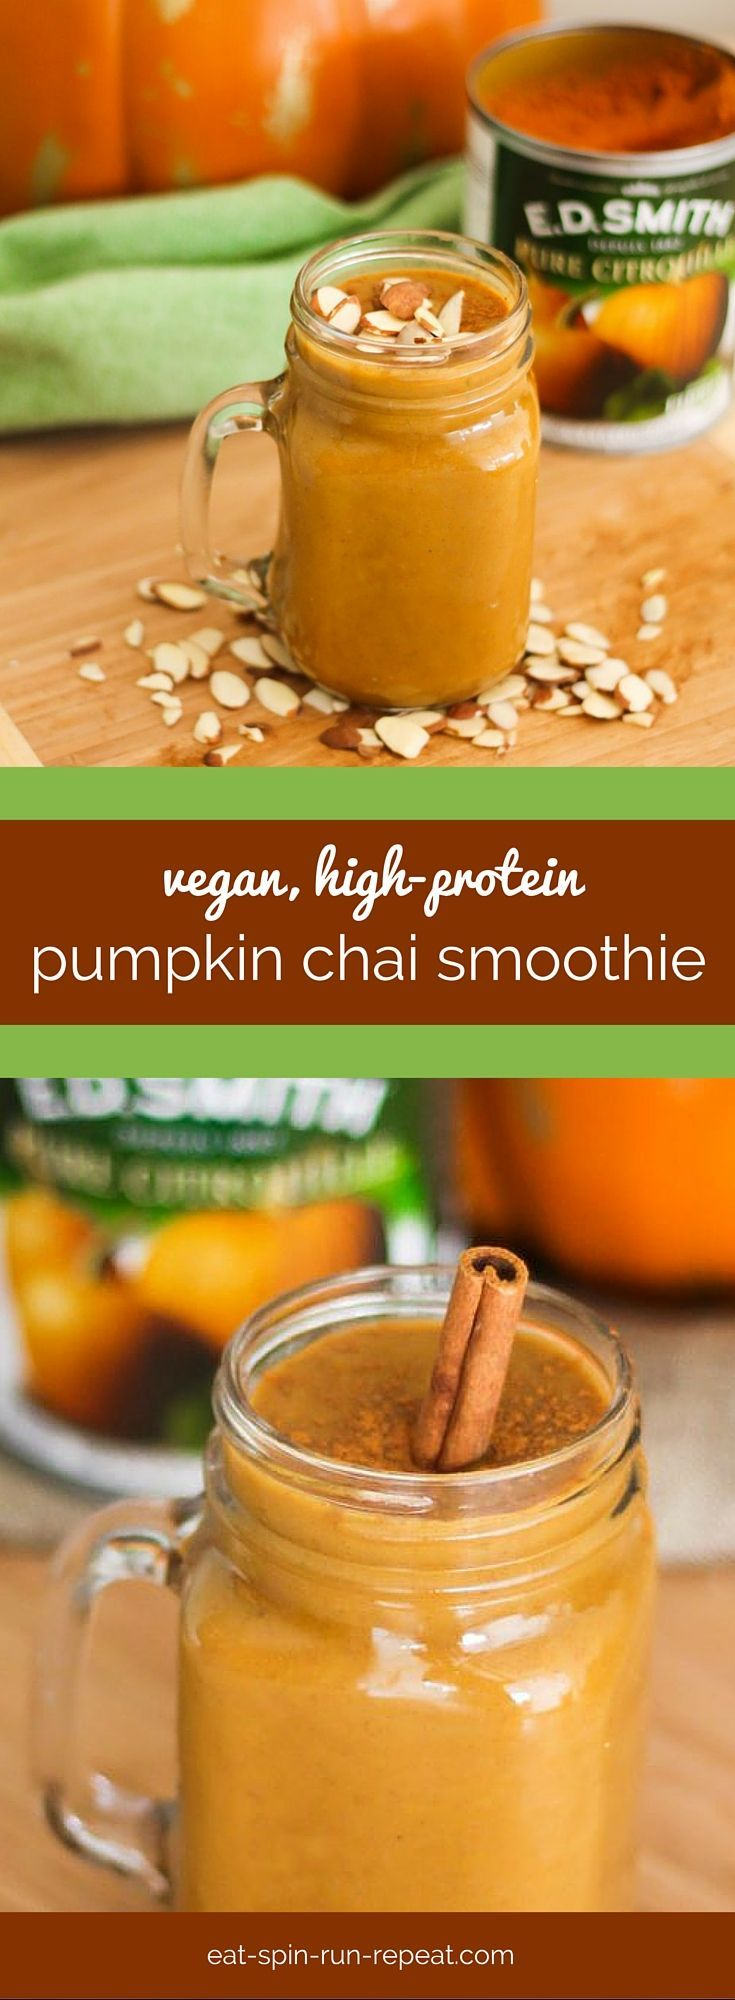 Pumpkin Chai Smoothie - vegan, high in protein, and loaded with fall flavour!